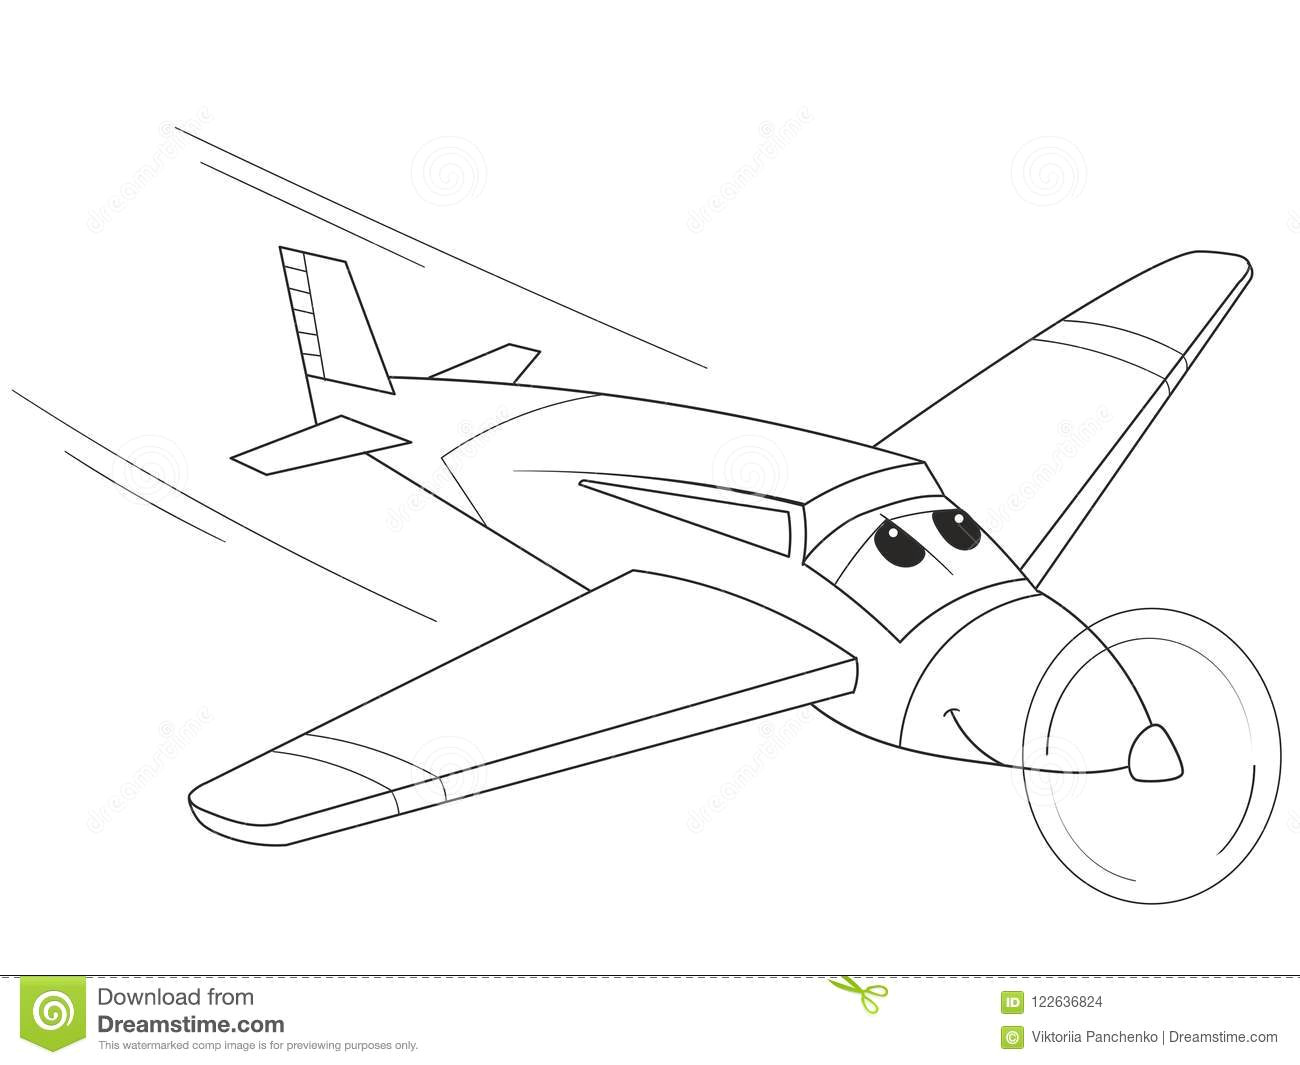 Drawing A Cartoon Airplane Cartoon Coloring Plane with Faces Live Transport Stock